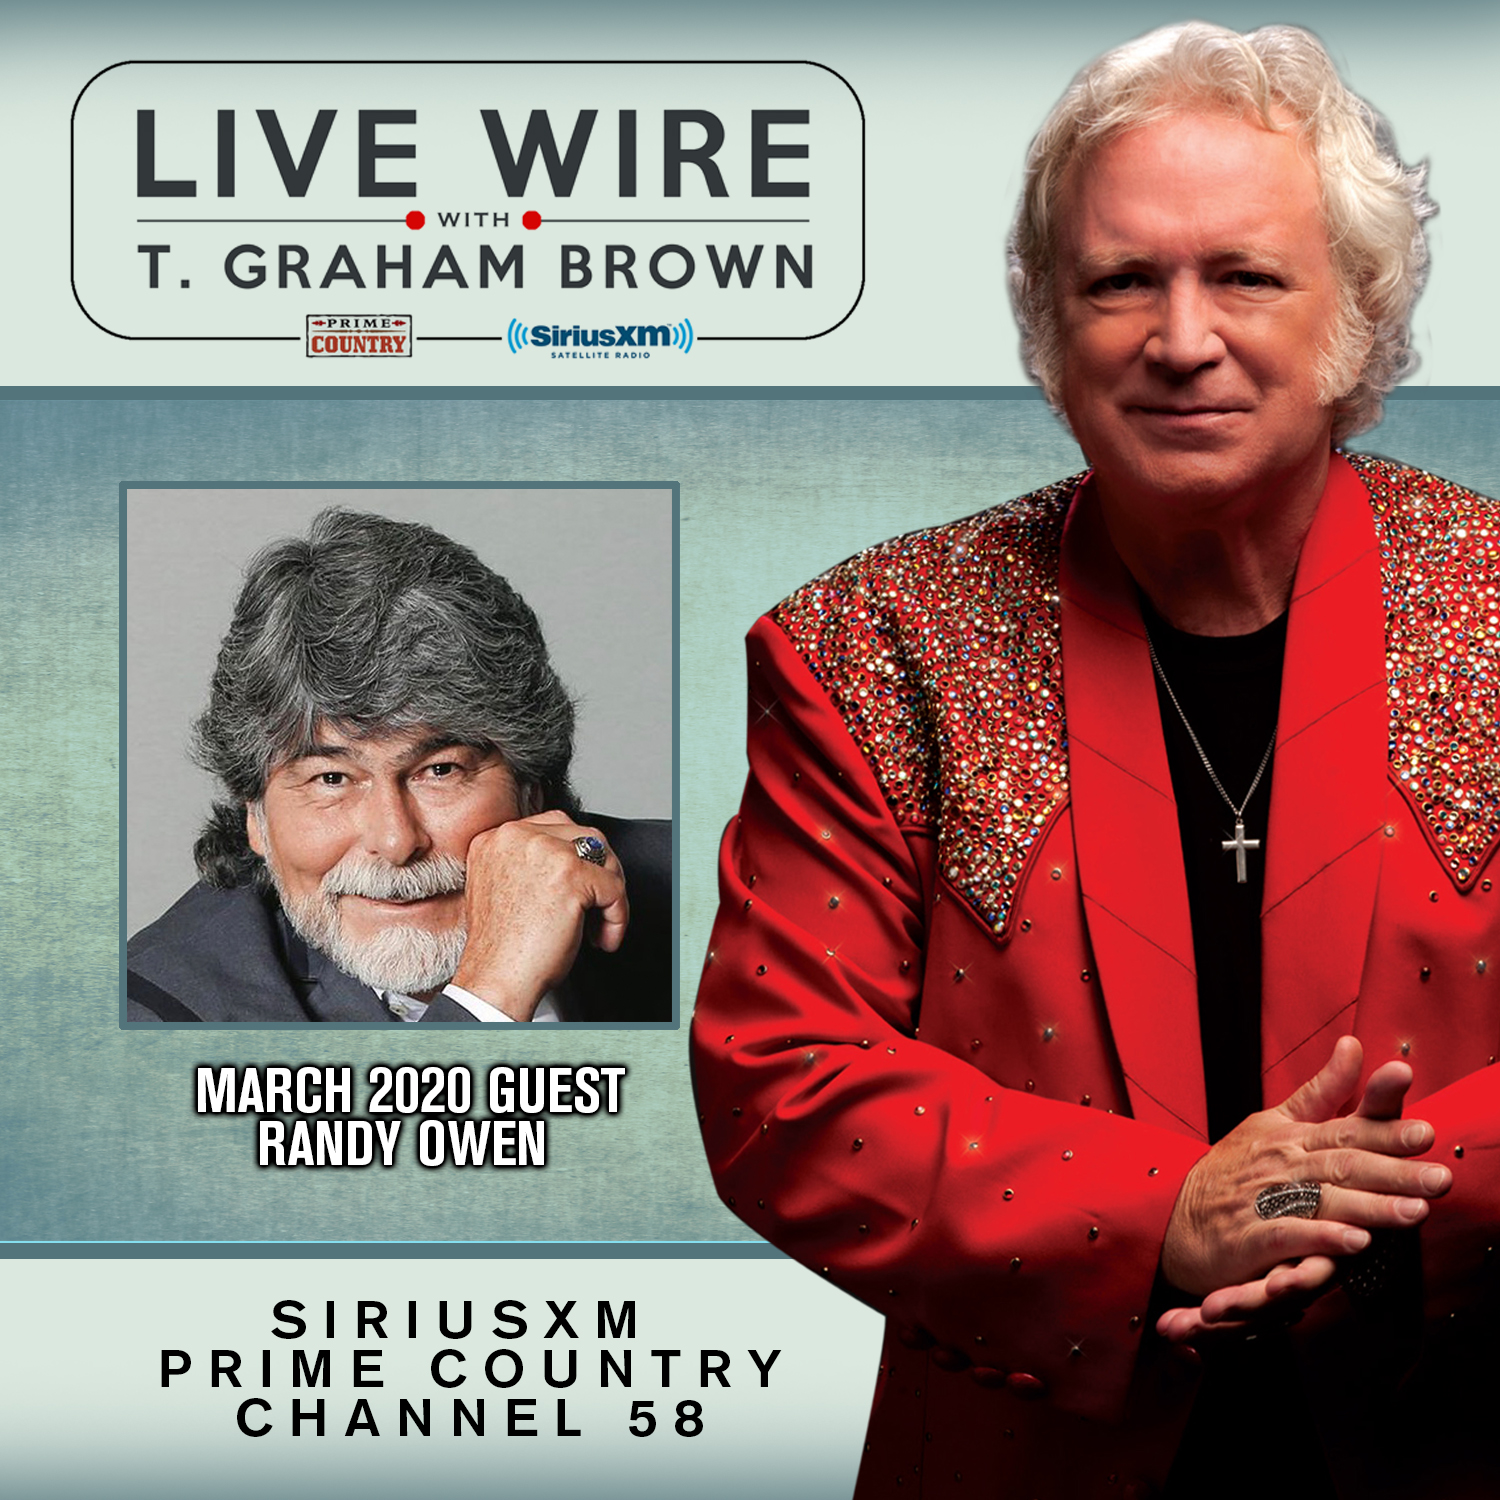 T. Graham Brown's Live Wire On SiriusXM's Prime Country Channel 58 Continues Wednesday, March 4th at 10/9c